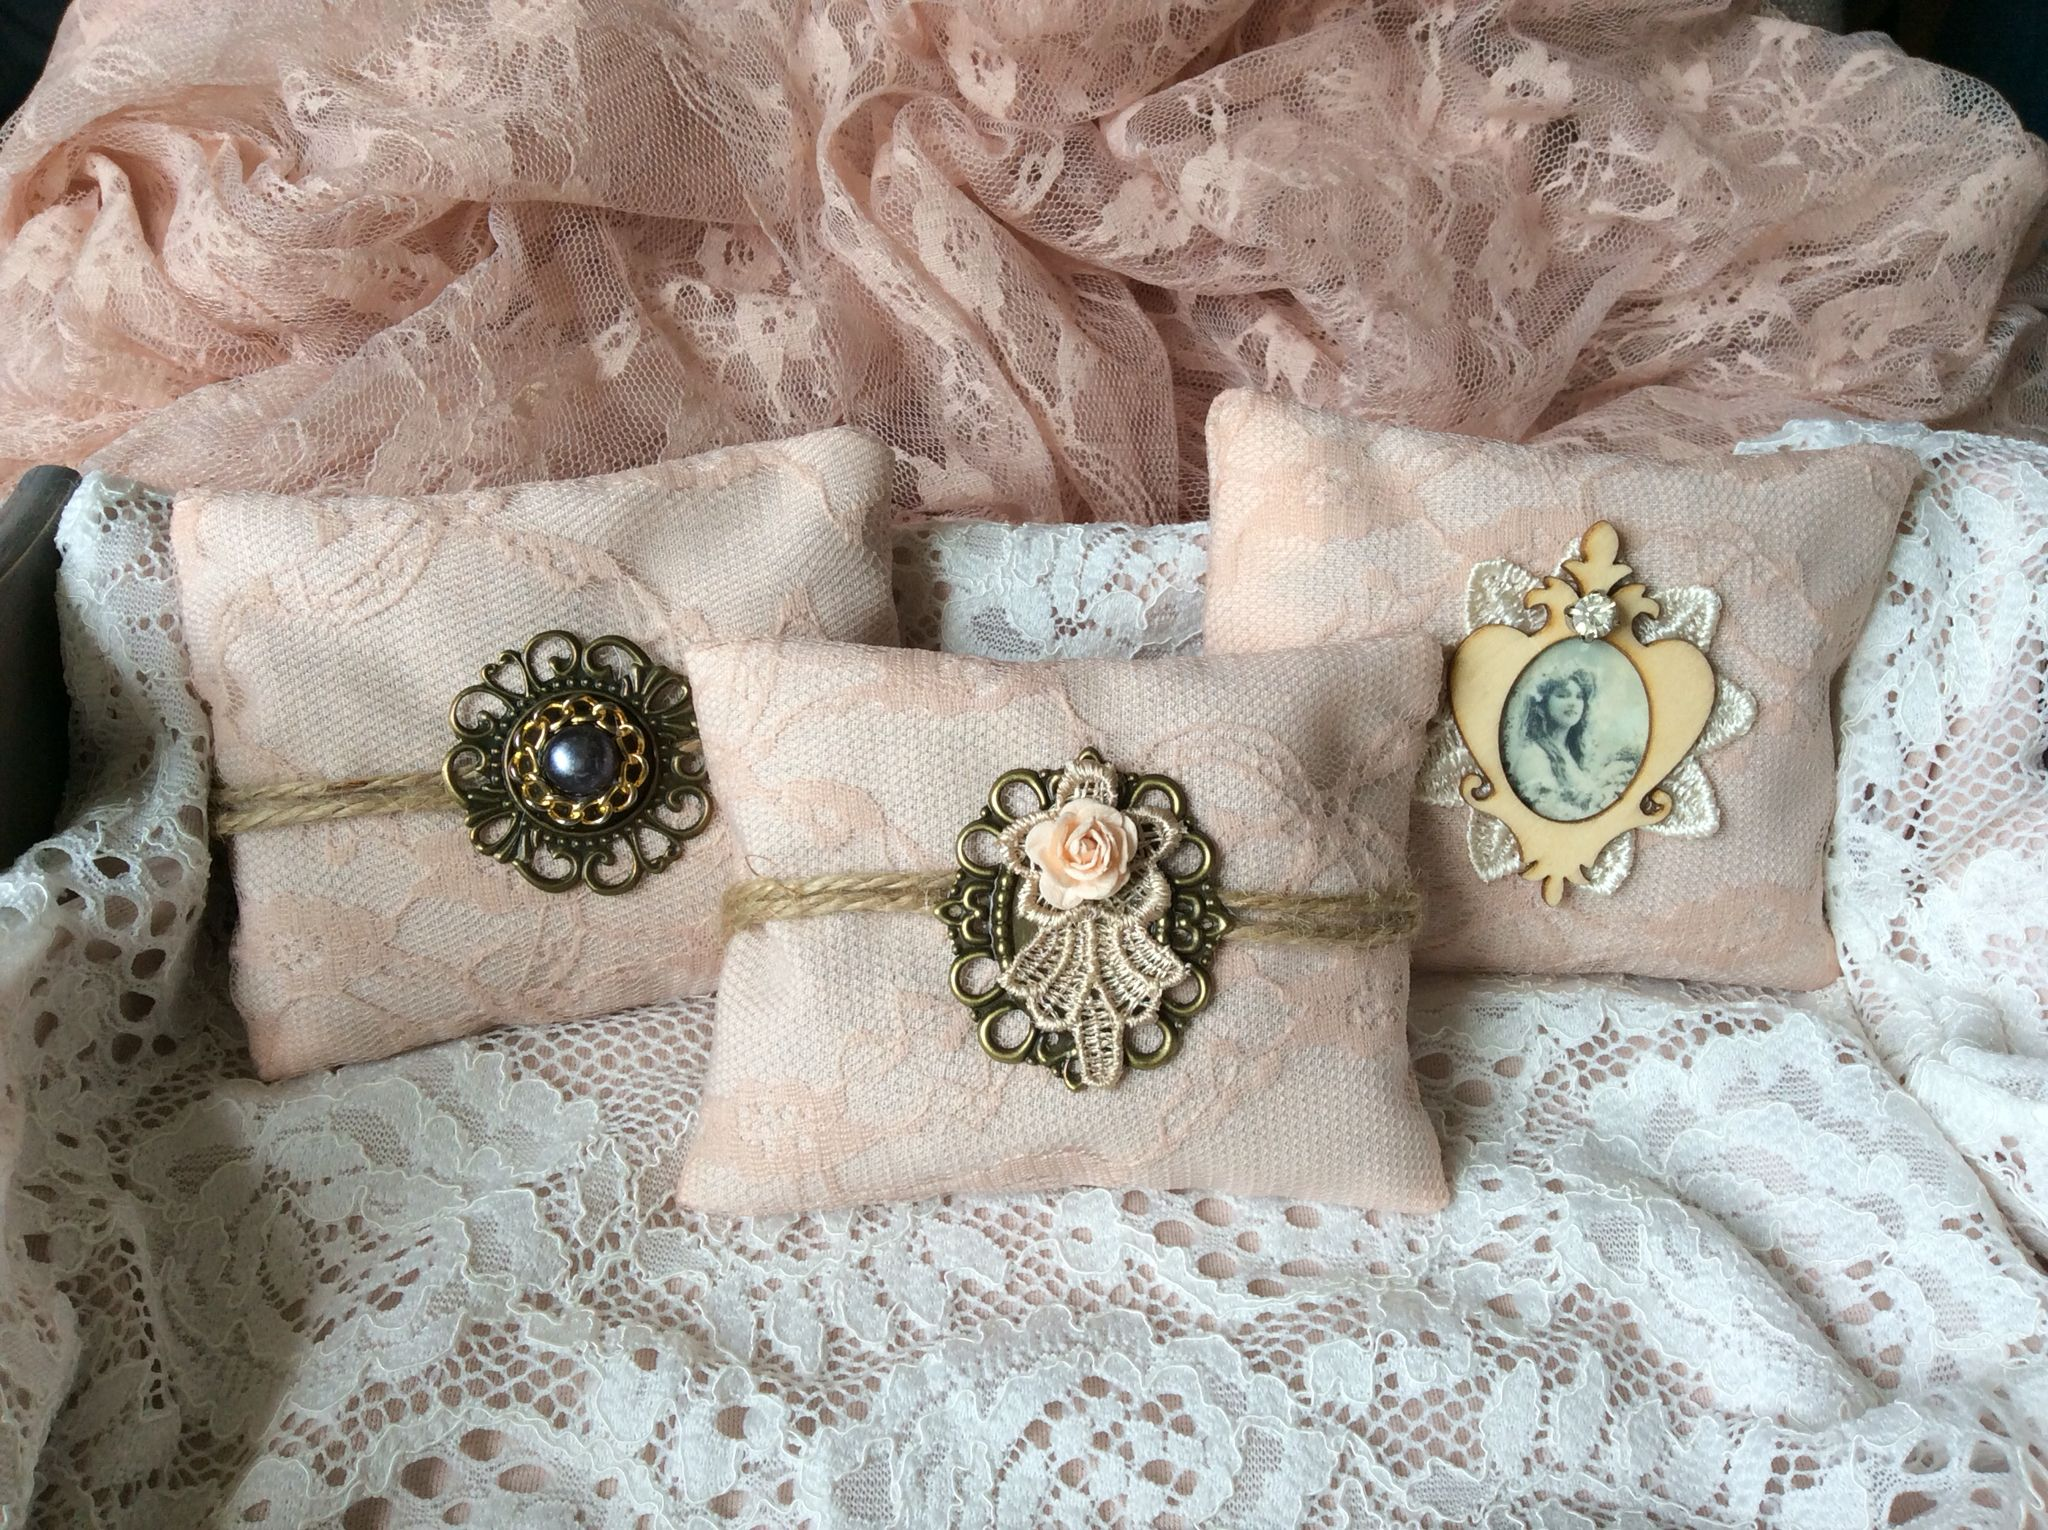 Handmade lavender mini pillows decorated with lace and vintage style